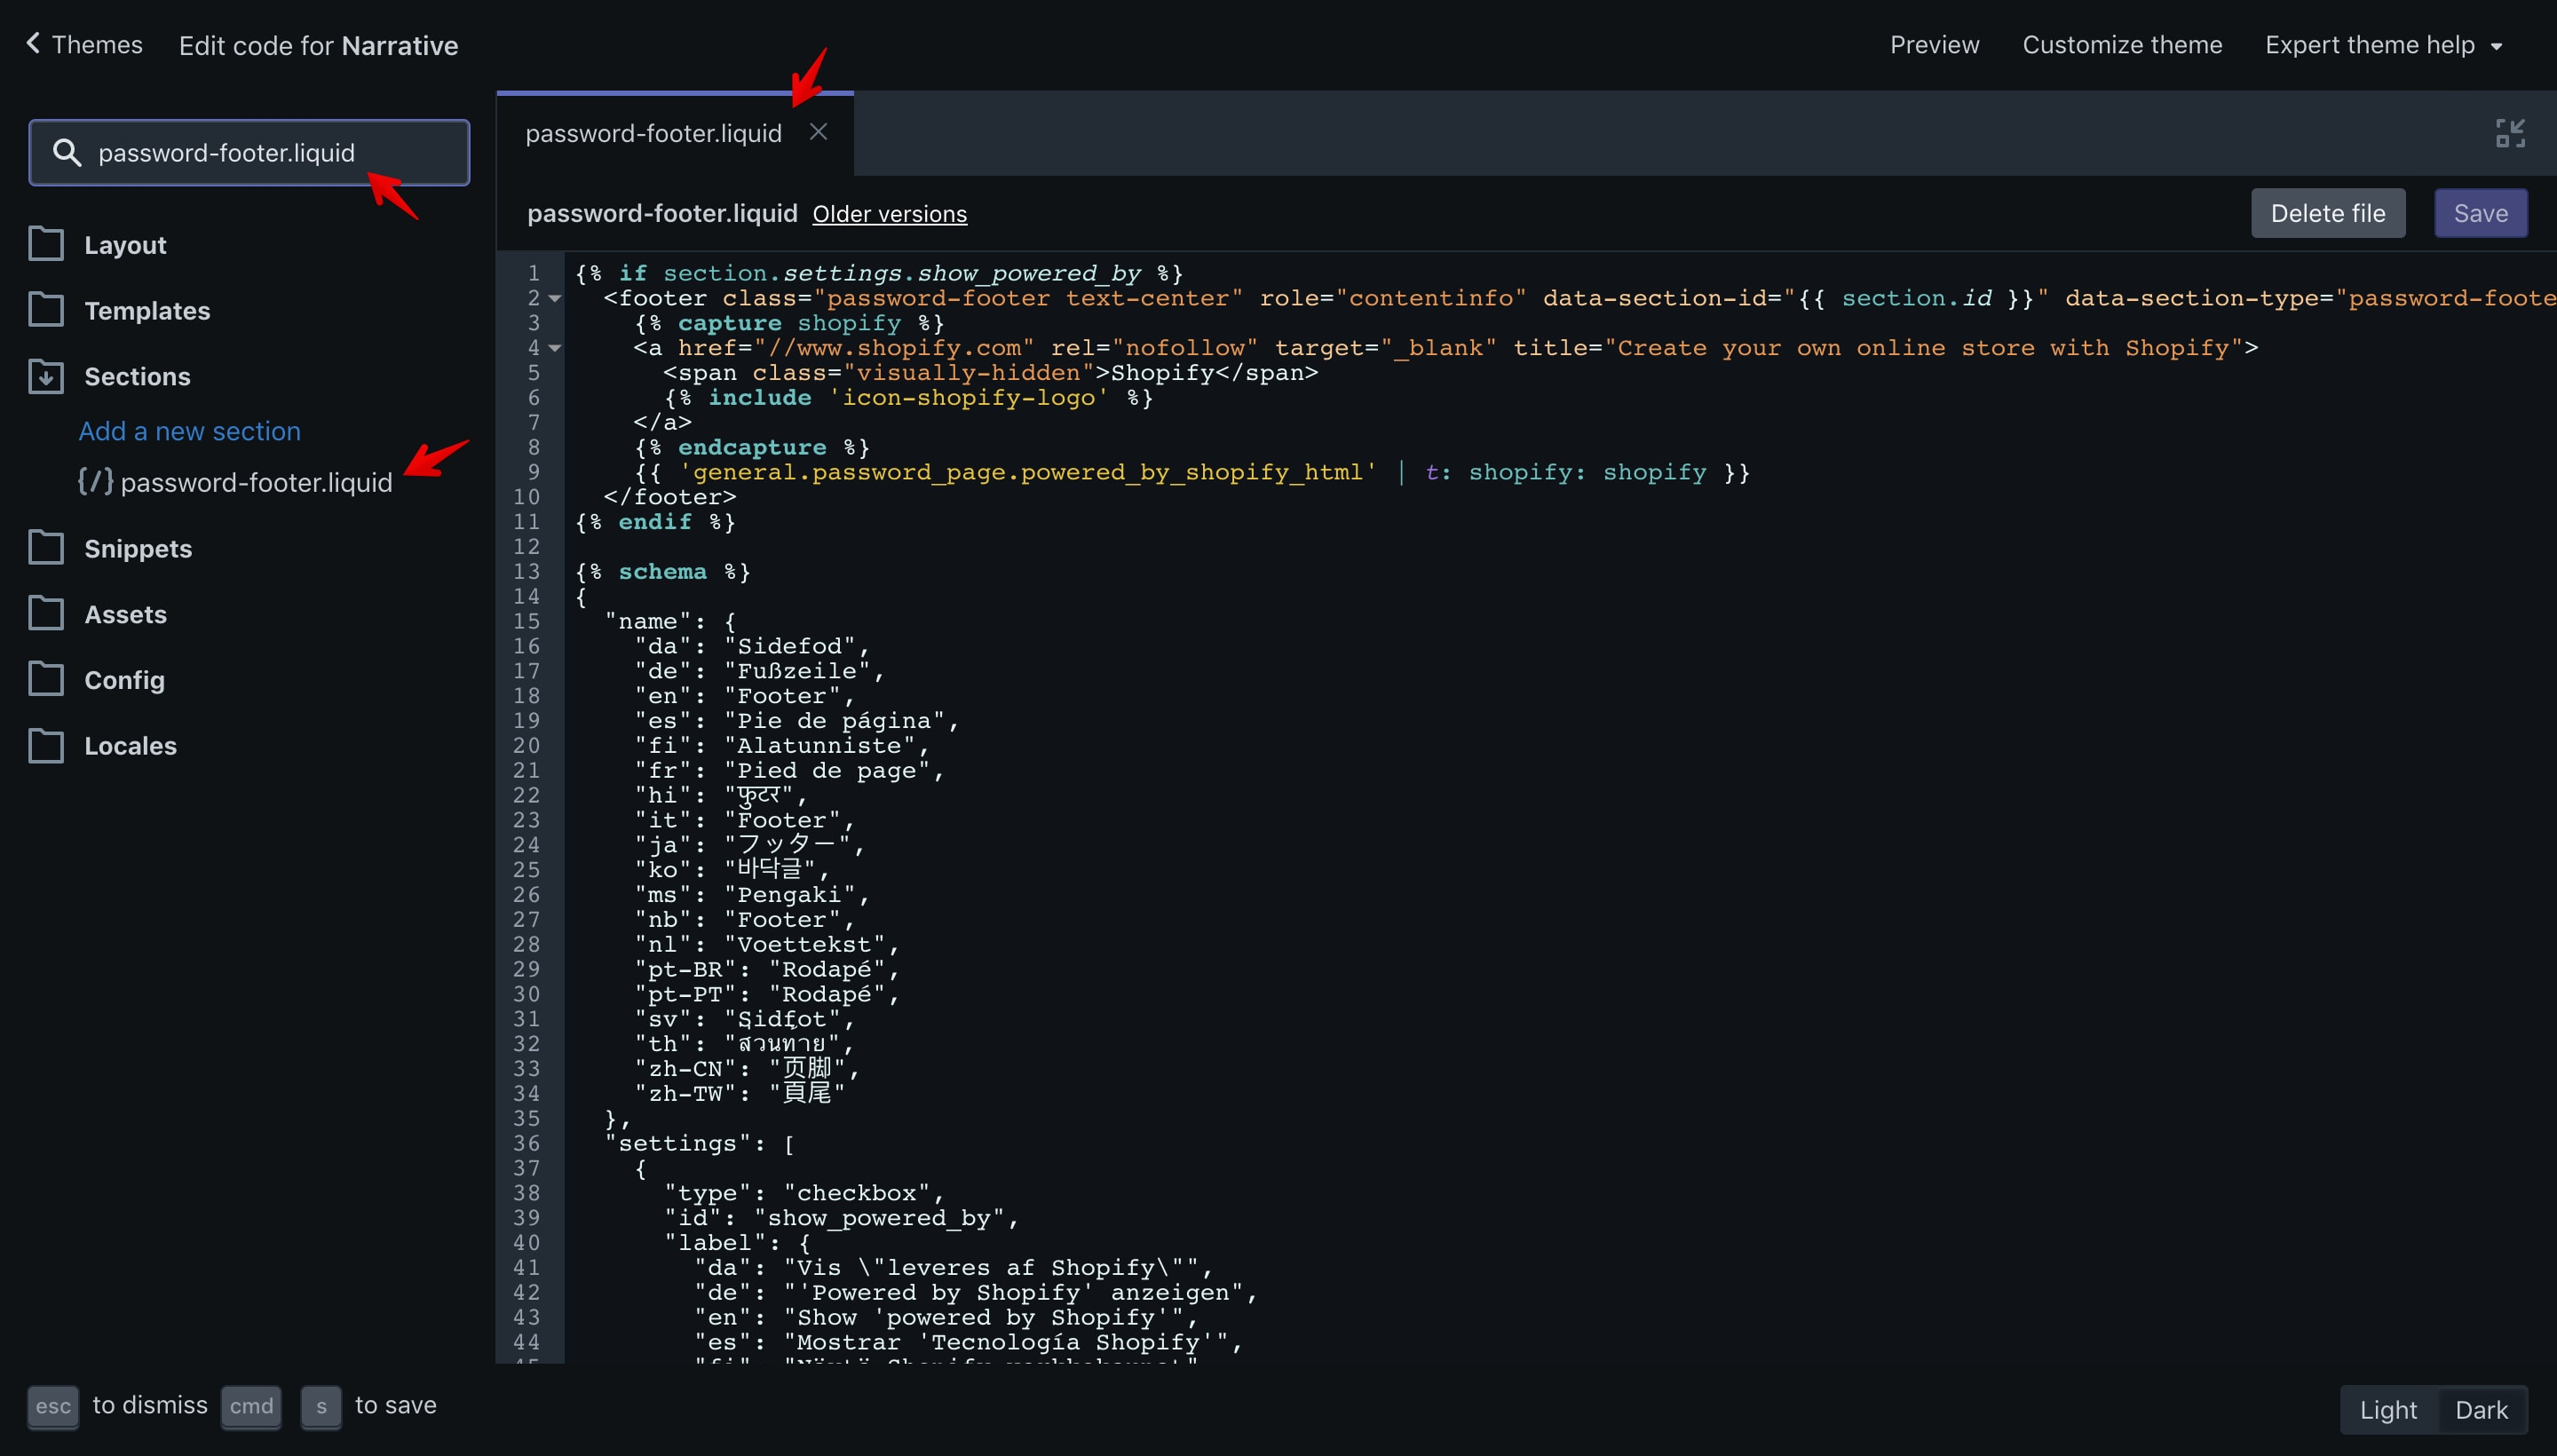 """Narrative theme """"password-footer.liquid"""" file opened in the code editor."""